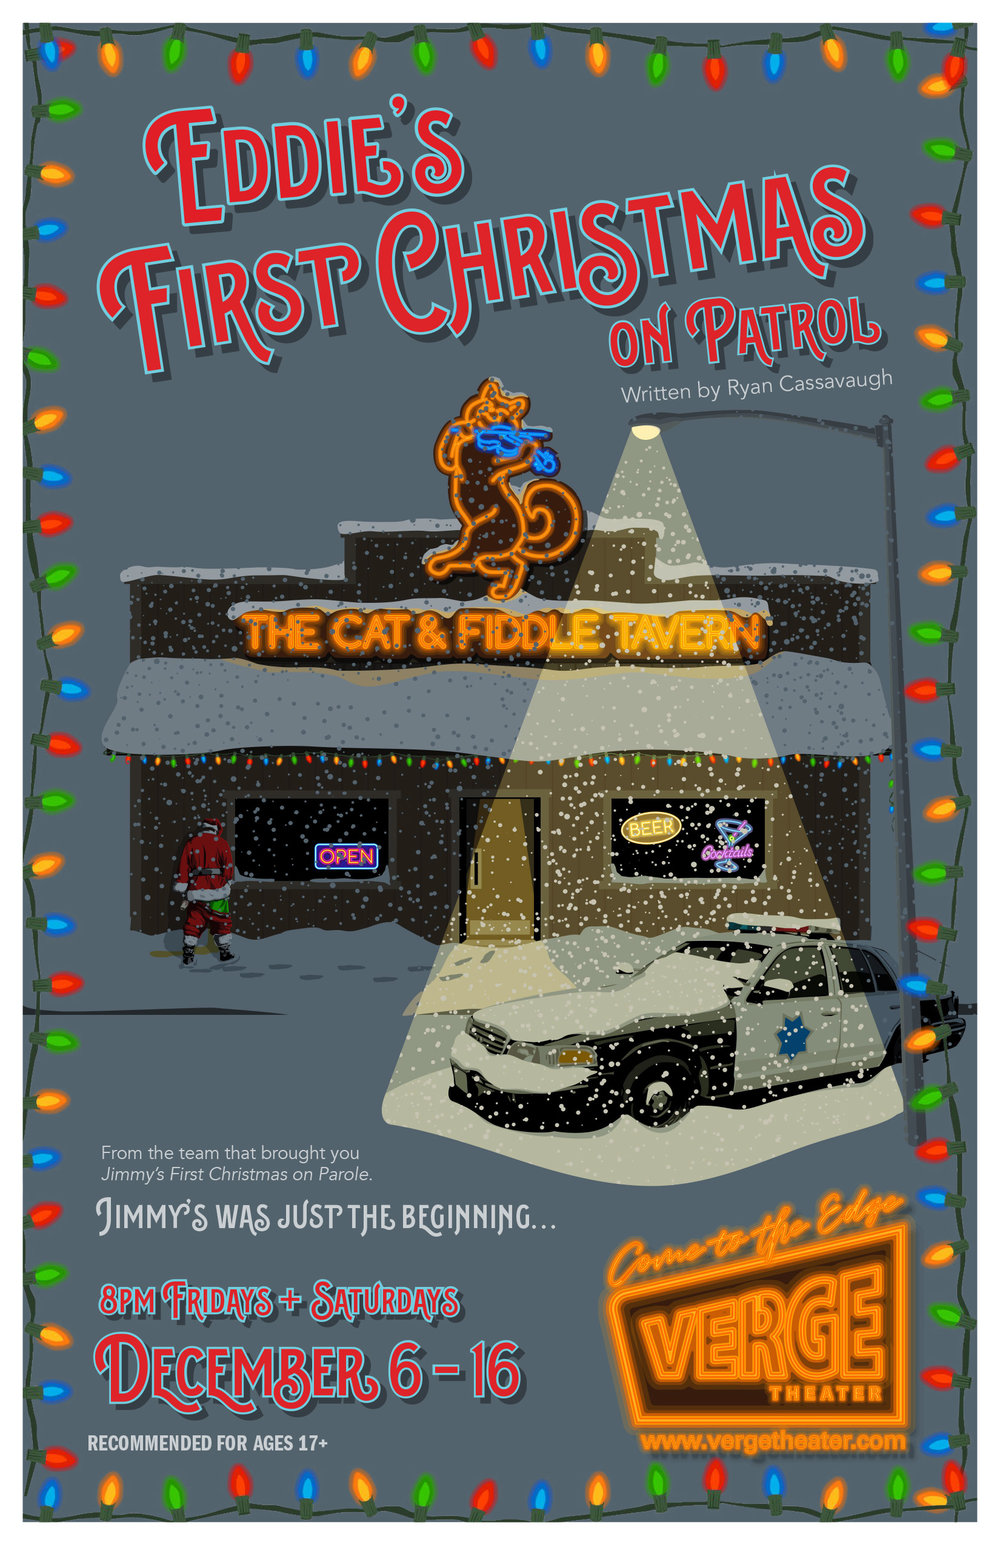 Eddies First Christmas on Patrol Poster for website.jpg